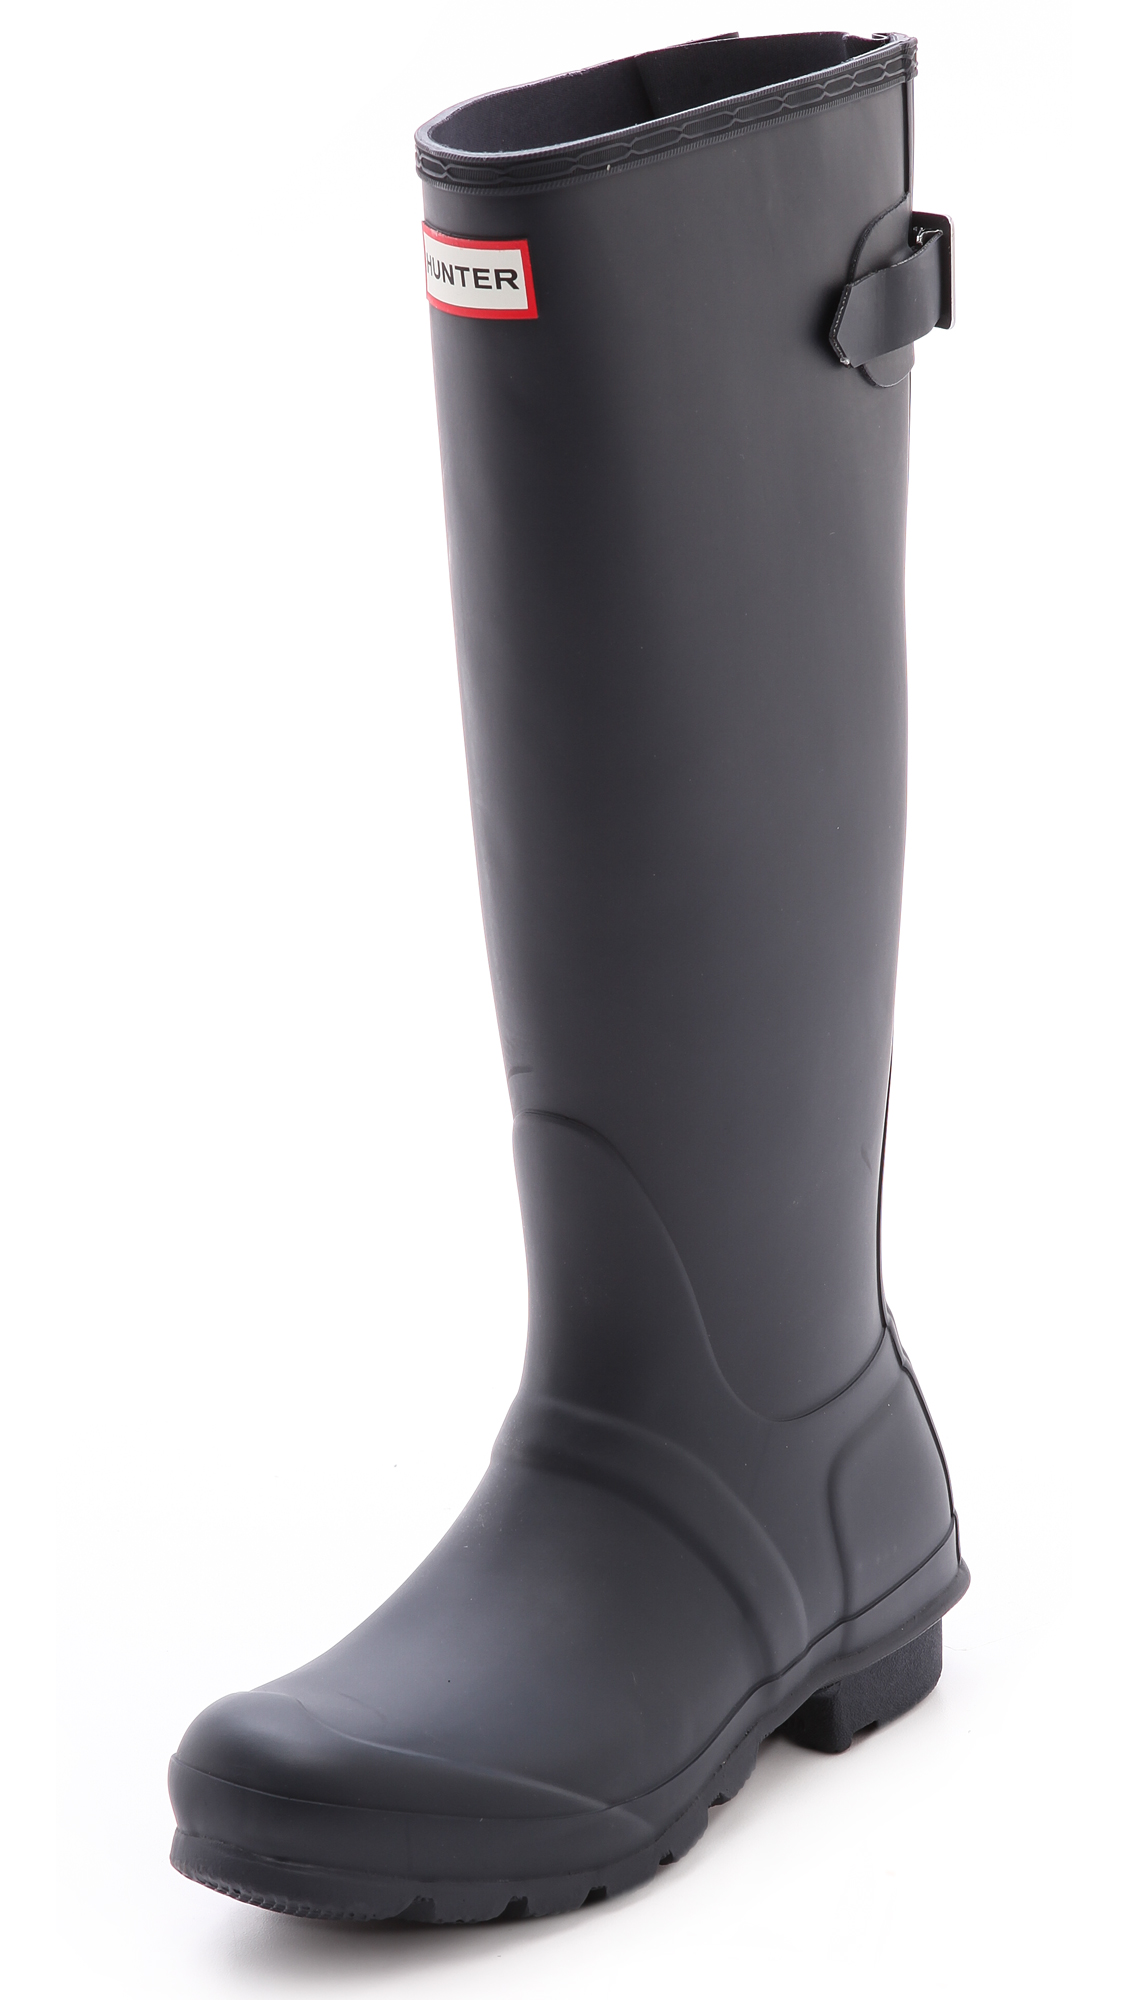 Hunter Boots Original Back Adjustable Boots - Navy at Shopbop